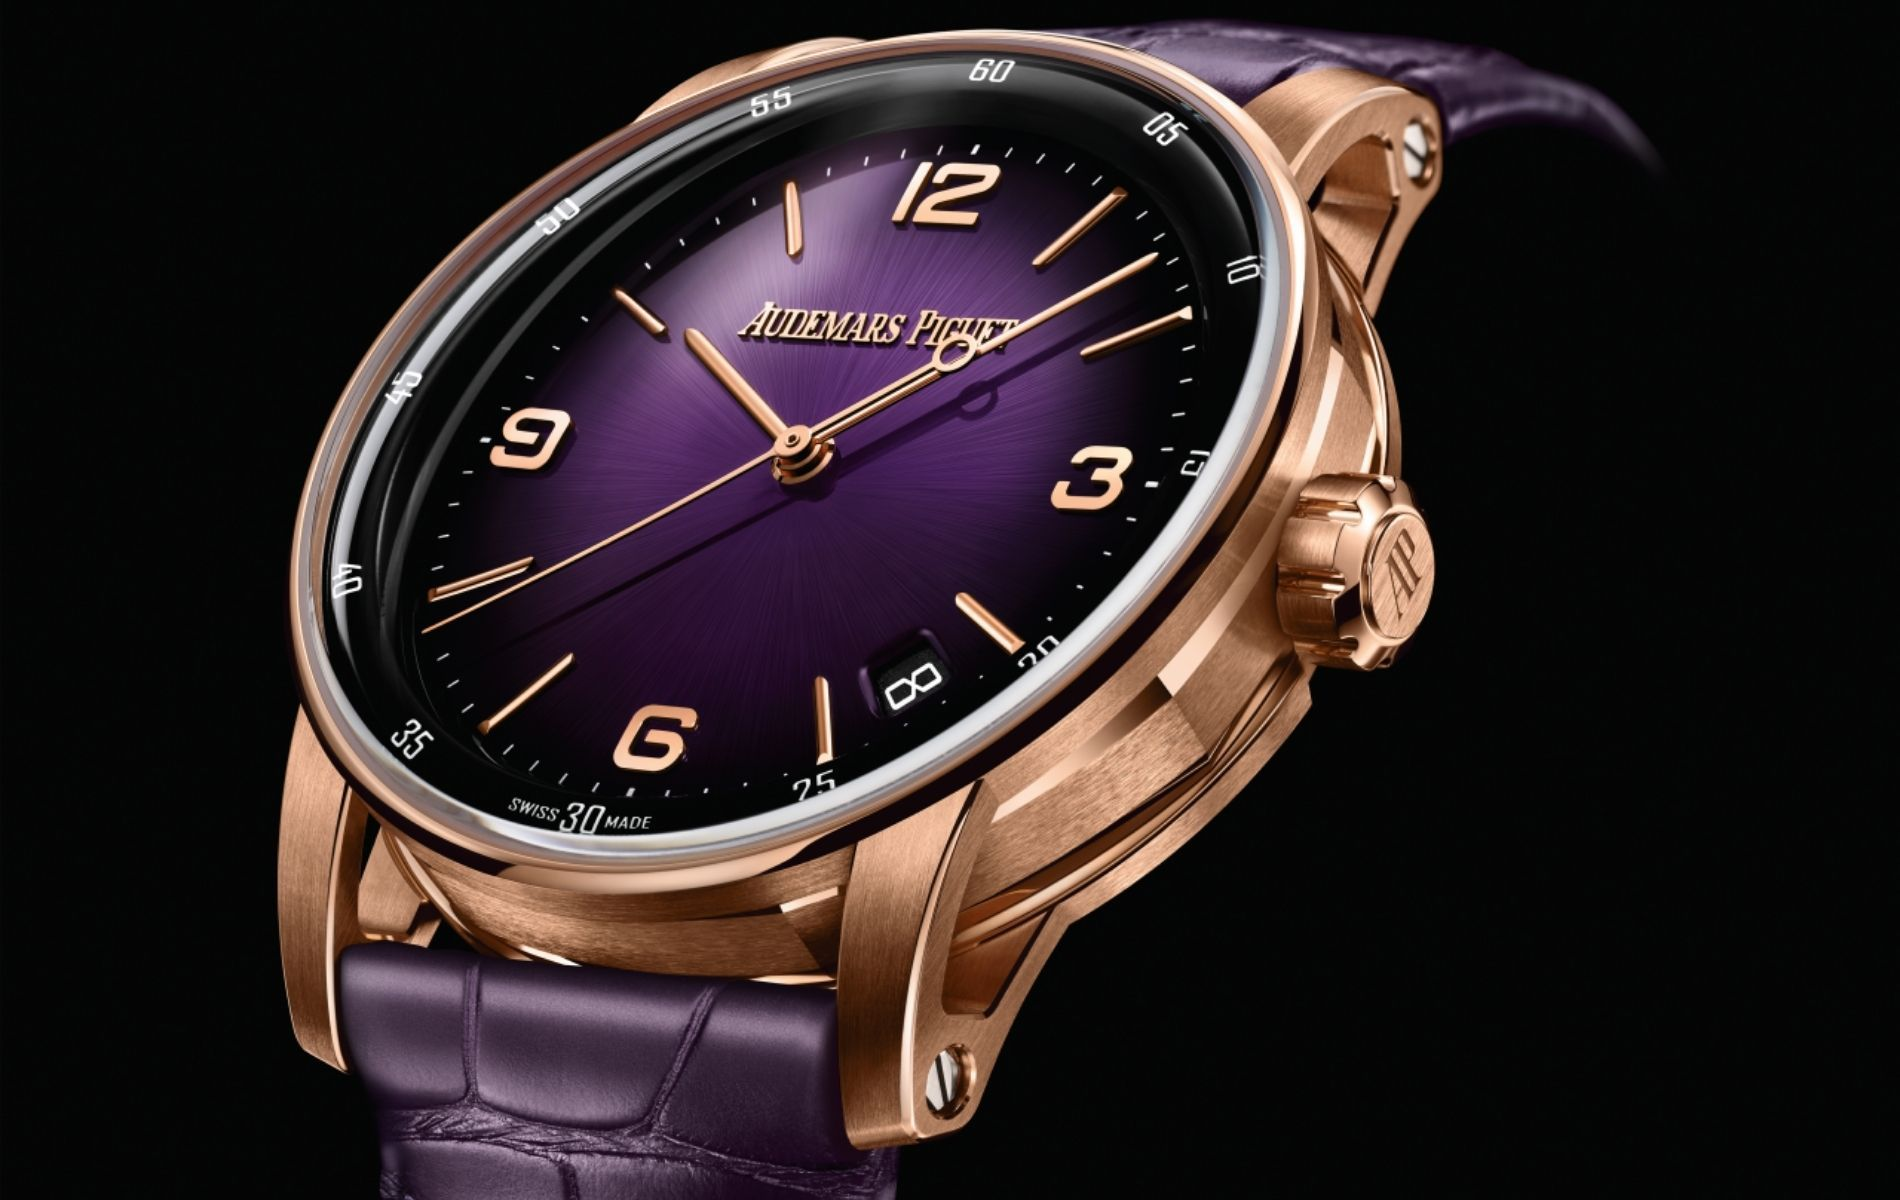 Self-winding in 18k pink gold with smoked purple dial